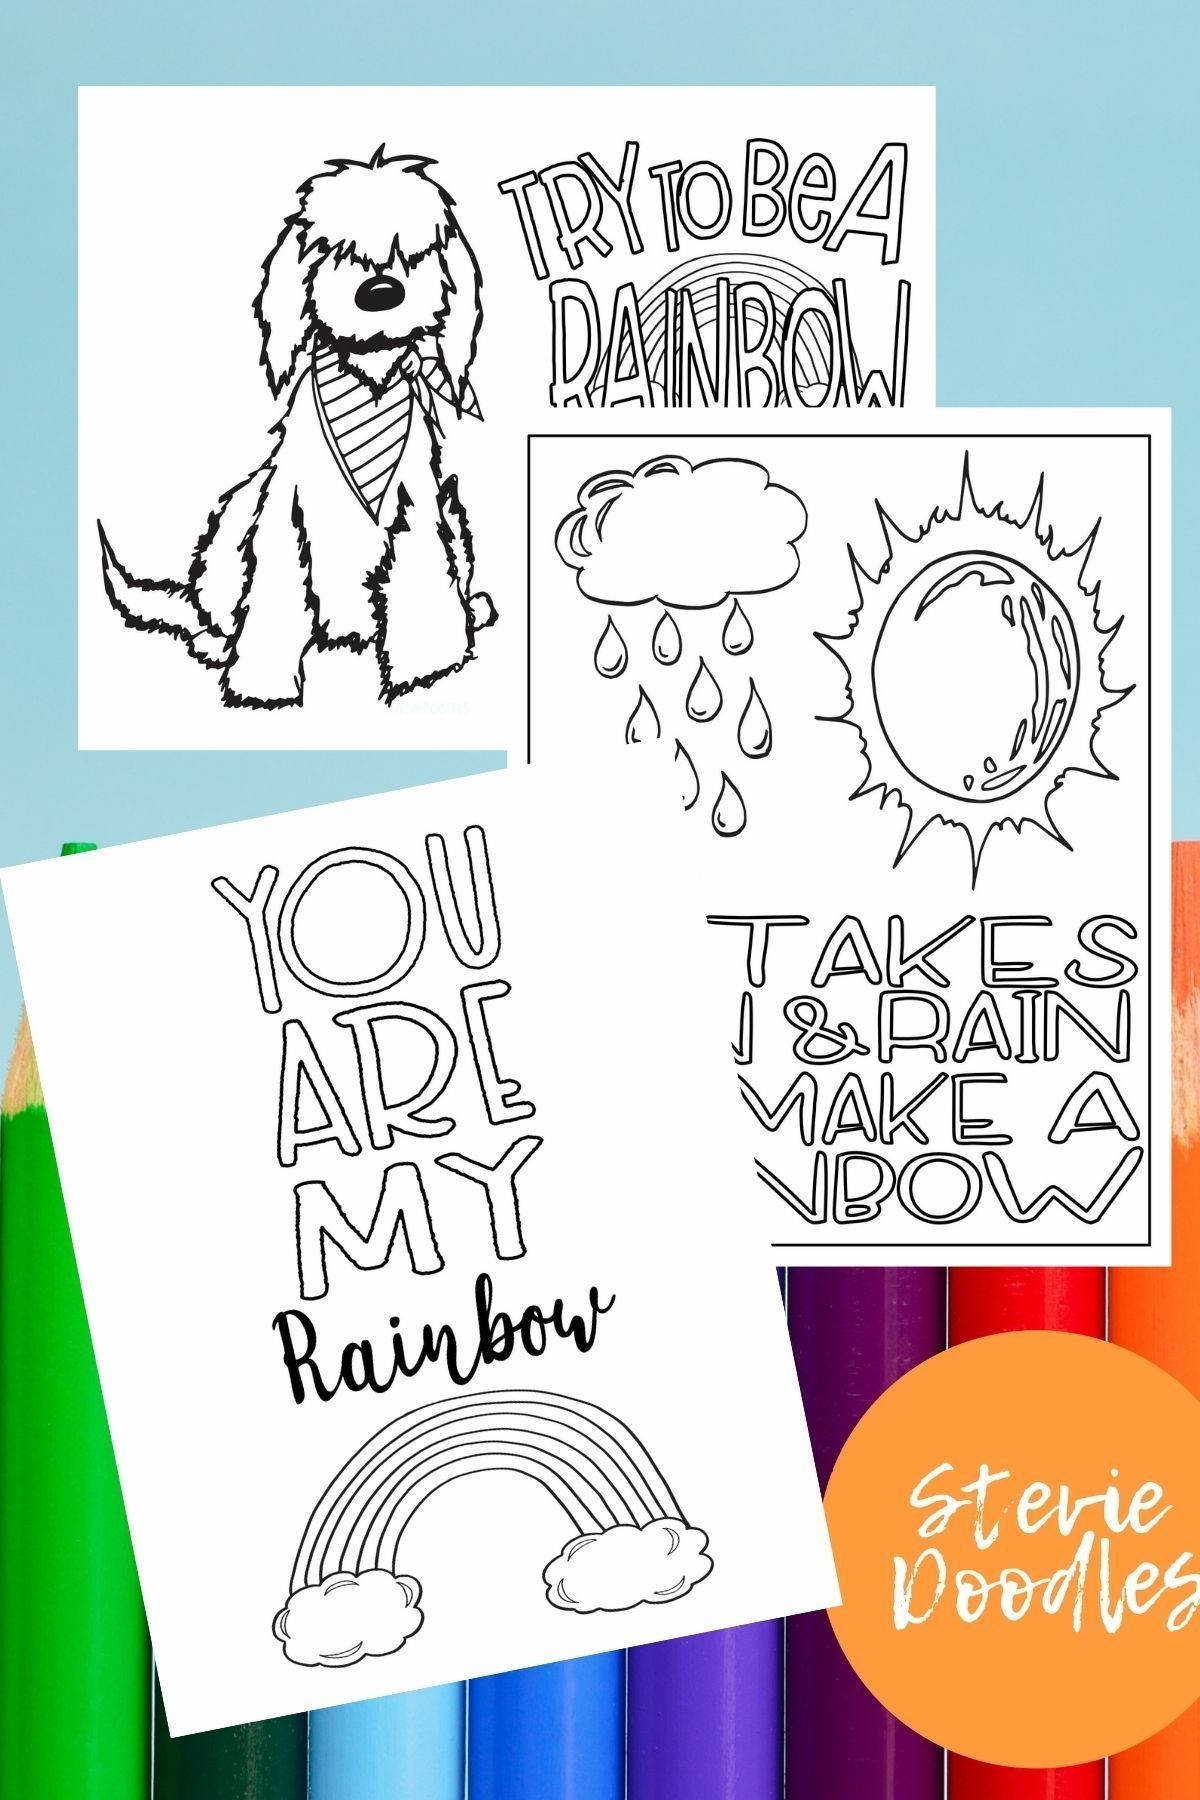 11 Free Printable Rainbow Coloring Pages Stevie Doodles Coloring Pages Free Printables Free Printable Coloring Pages [ 1800 x 1200 Pixel ]